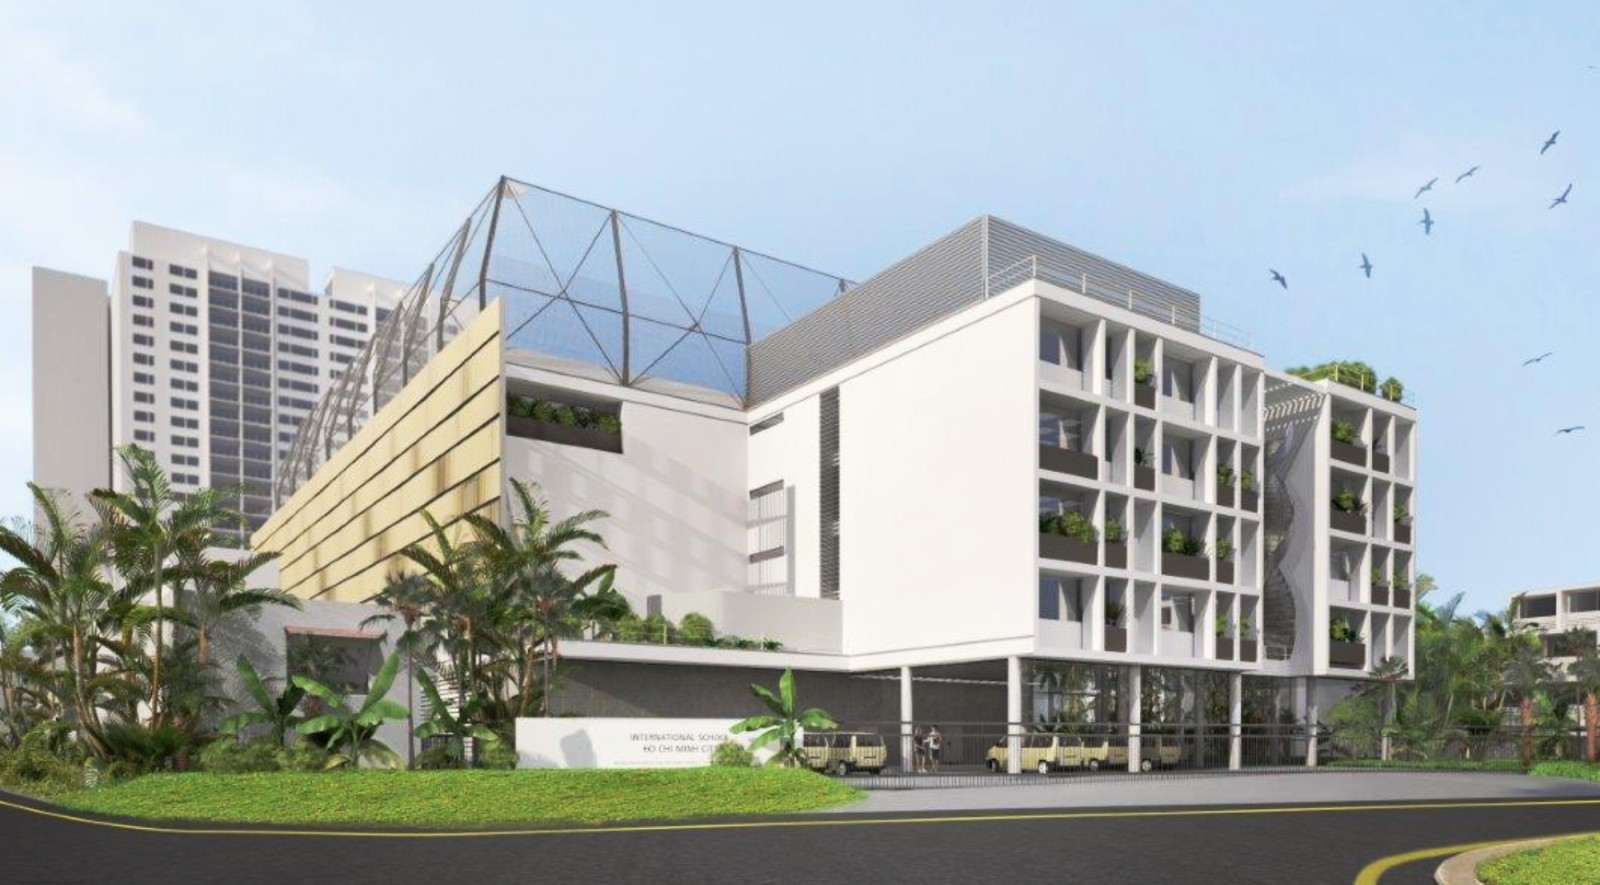 Design international school in vietnam by bogle architects for International architecture and design